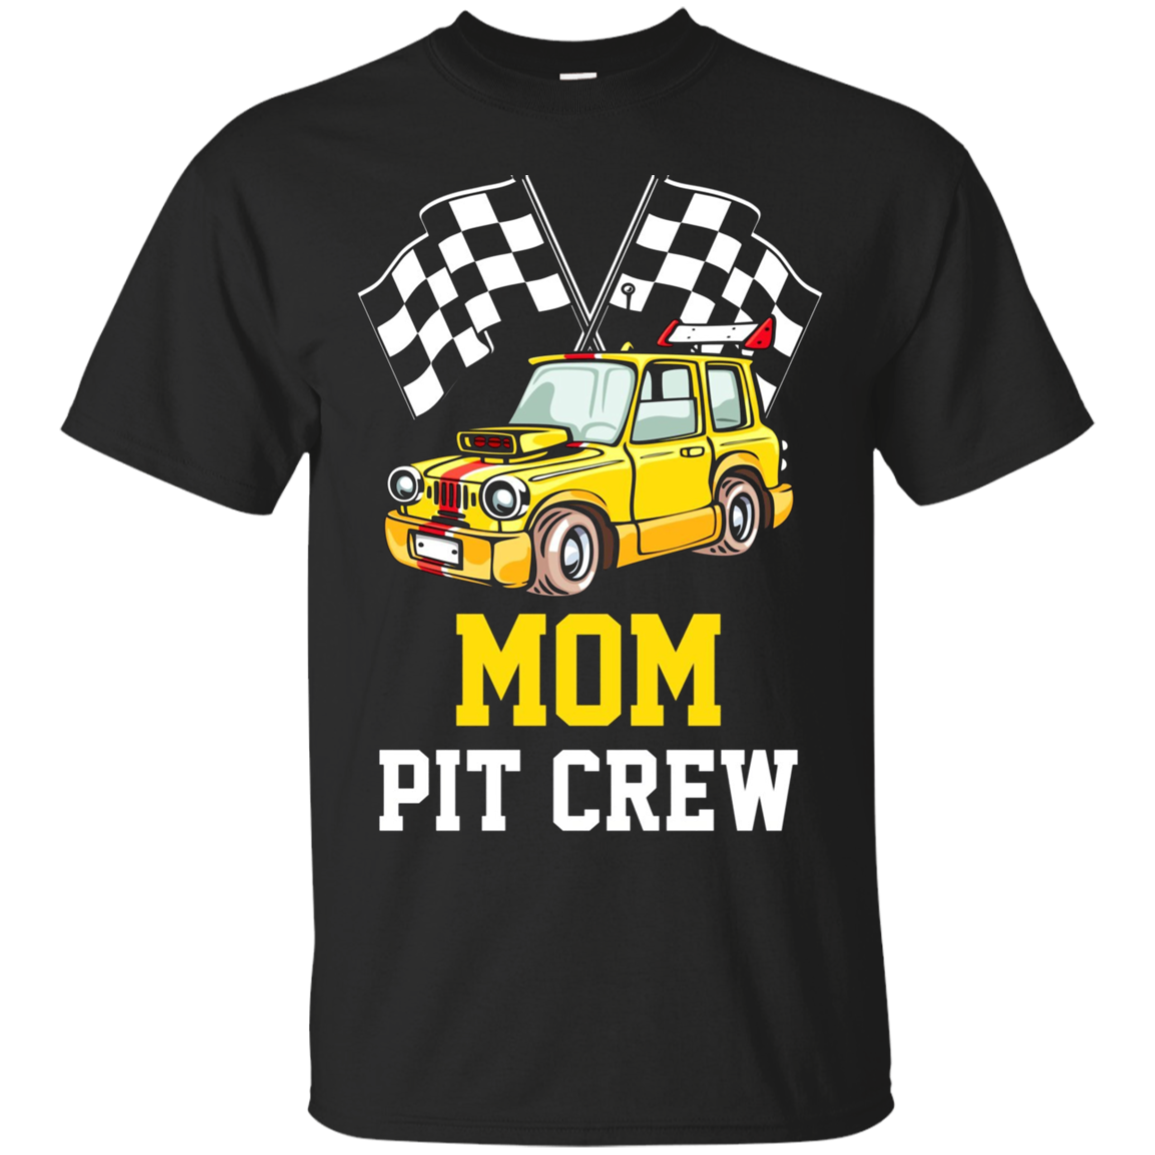 Pit Crew MOM Back Print Long Sleeve T-Shirt Race Car